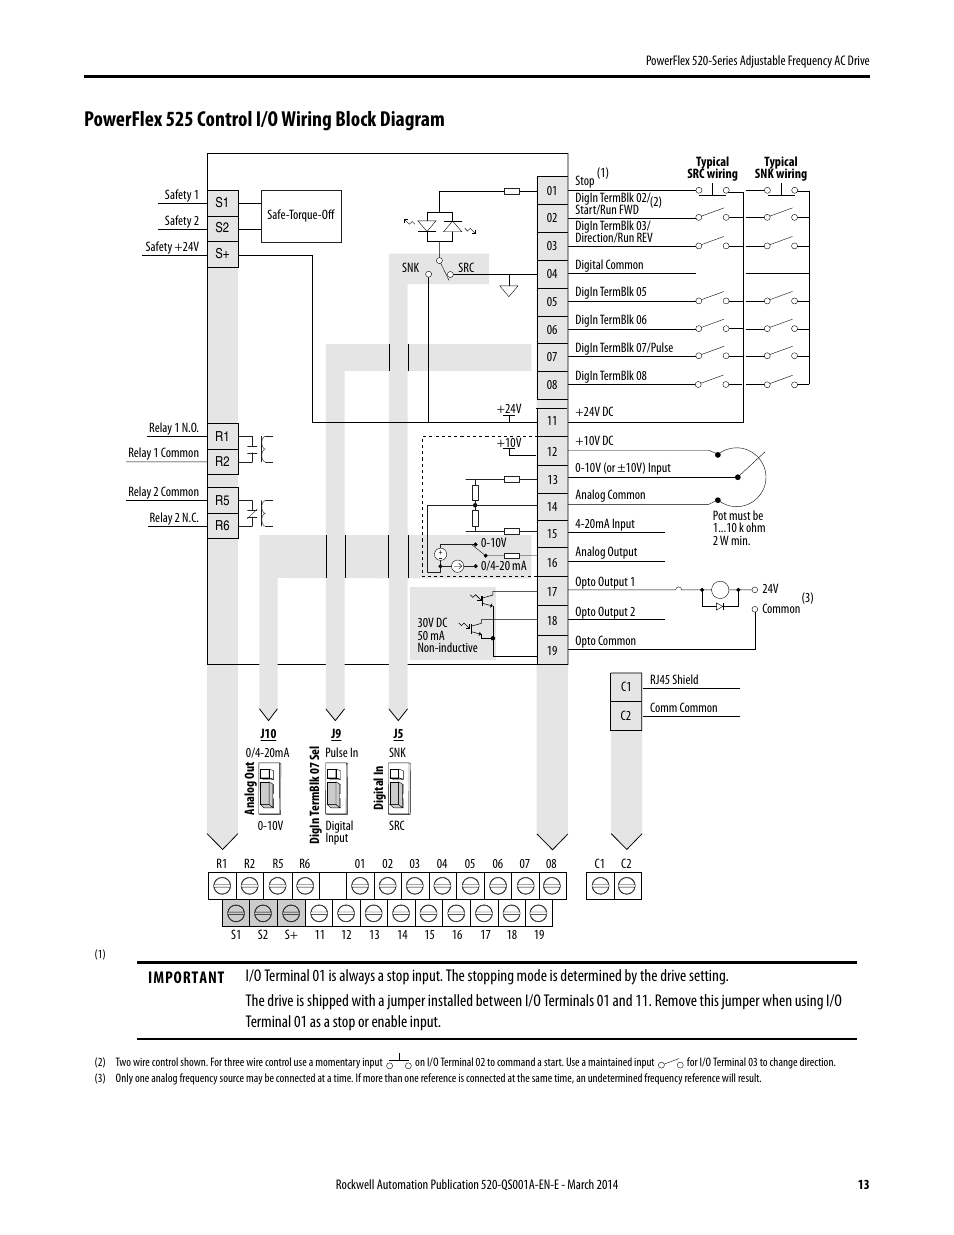 Esi wiring in addition Rockwell Automation 25b Powerflex 520 Series Adjustable Frequency Ac Drive Quick Start 25a Powerflex 520 Series Adjustable Frequency Ac Drive Quick Start as well 332606 as well Dayton 8 Pin Relay Wiring Diagram as well 120vac Relay Fan. on opto 22 relay wiring diagram